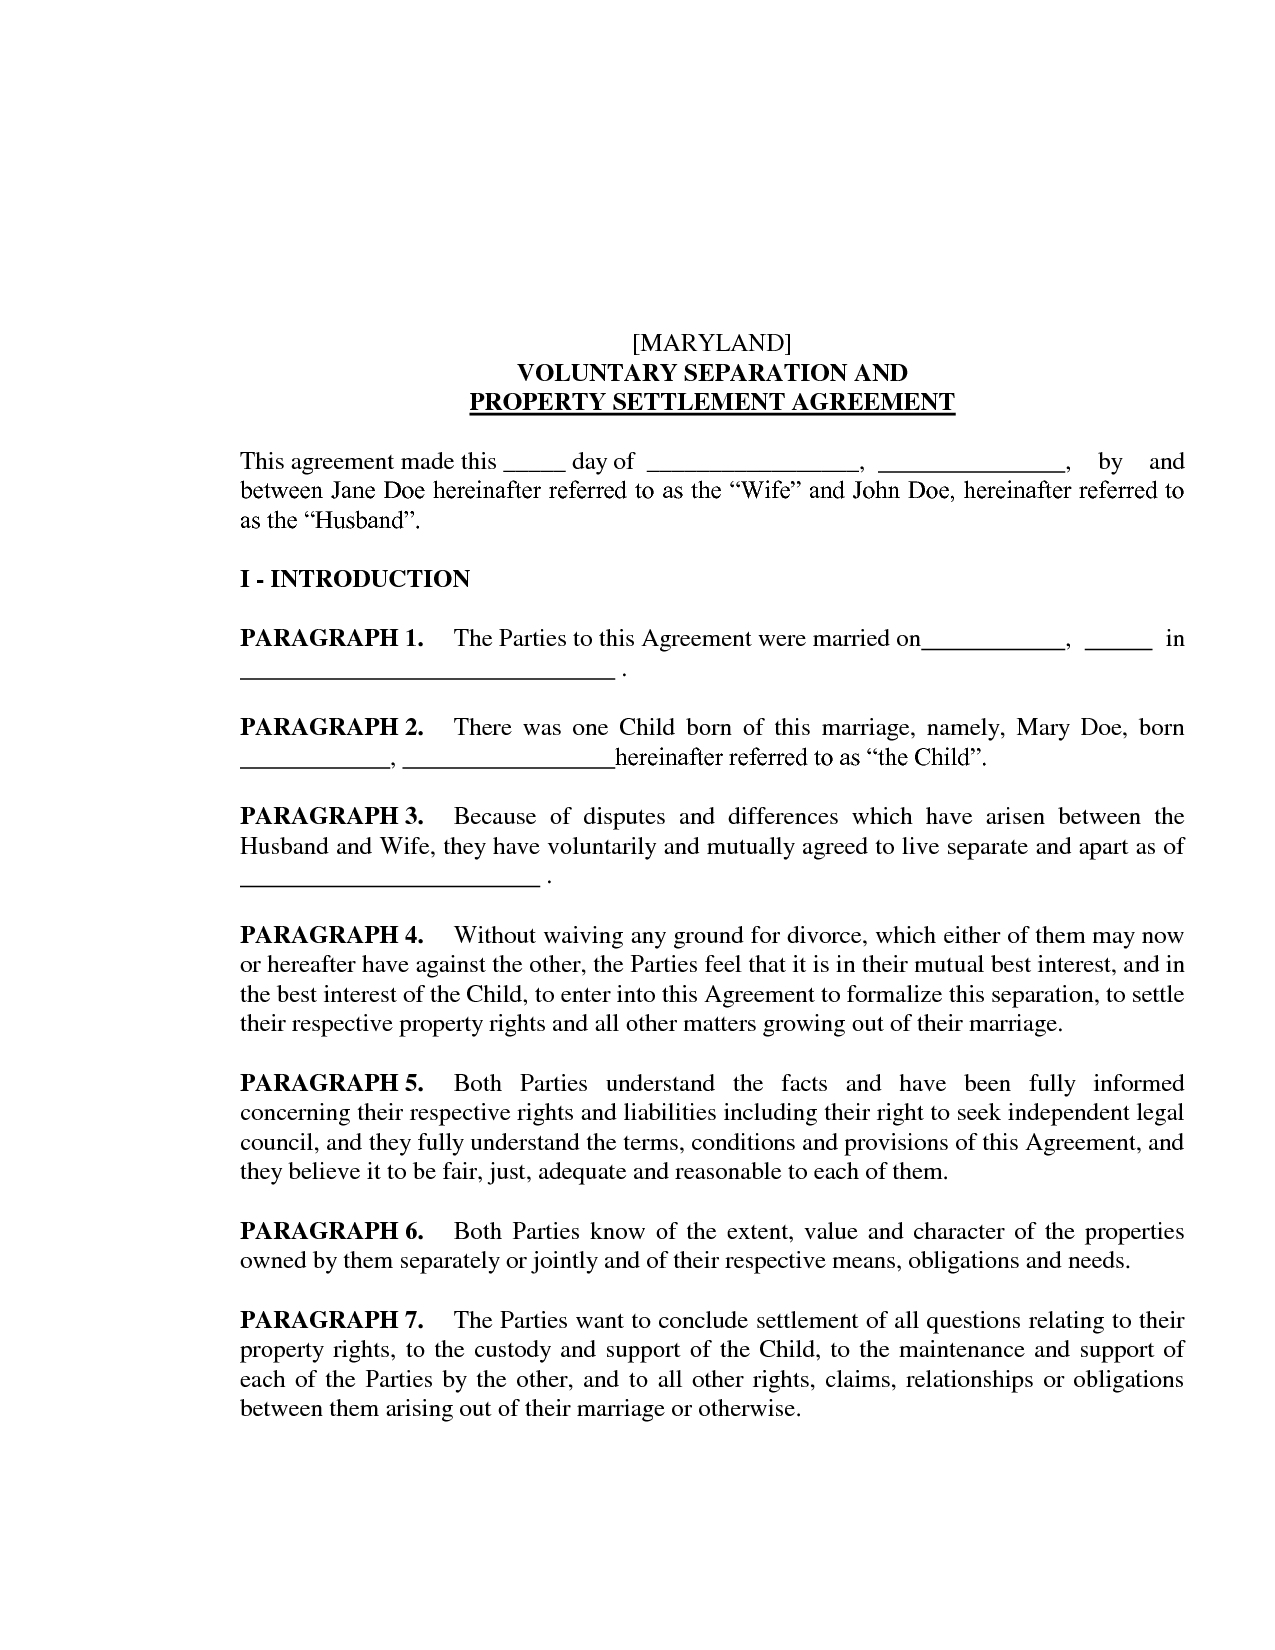 Separation Free Property Settlement Agreement Template